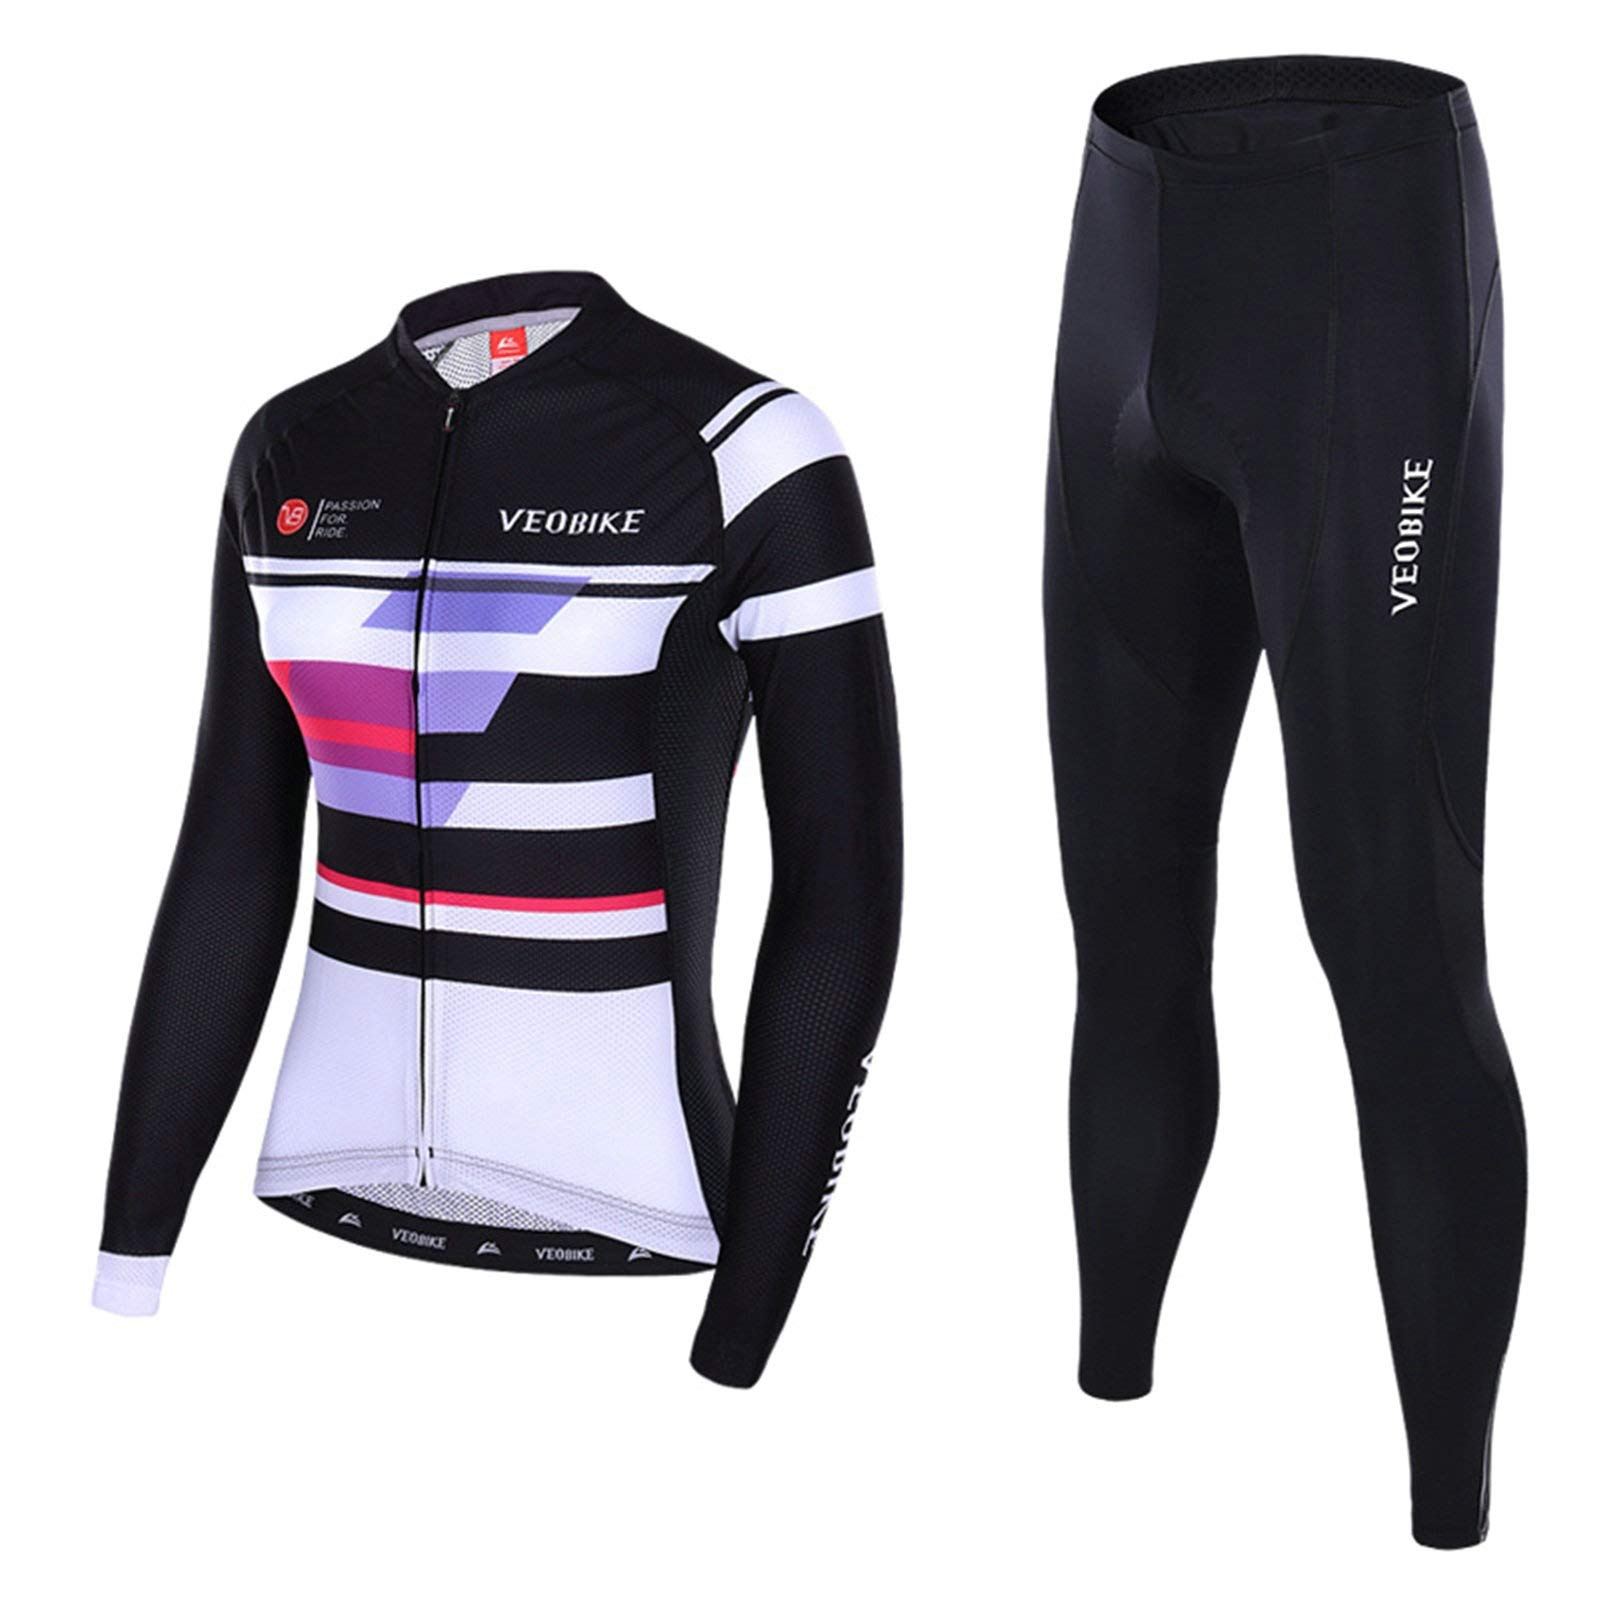 Aooaz Women's Cycling Clothes Full Sleeve Riding Wear Long Sleeve Shirt Tights Biking Outfit Black Size S